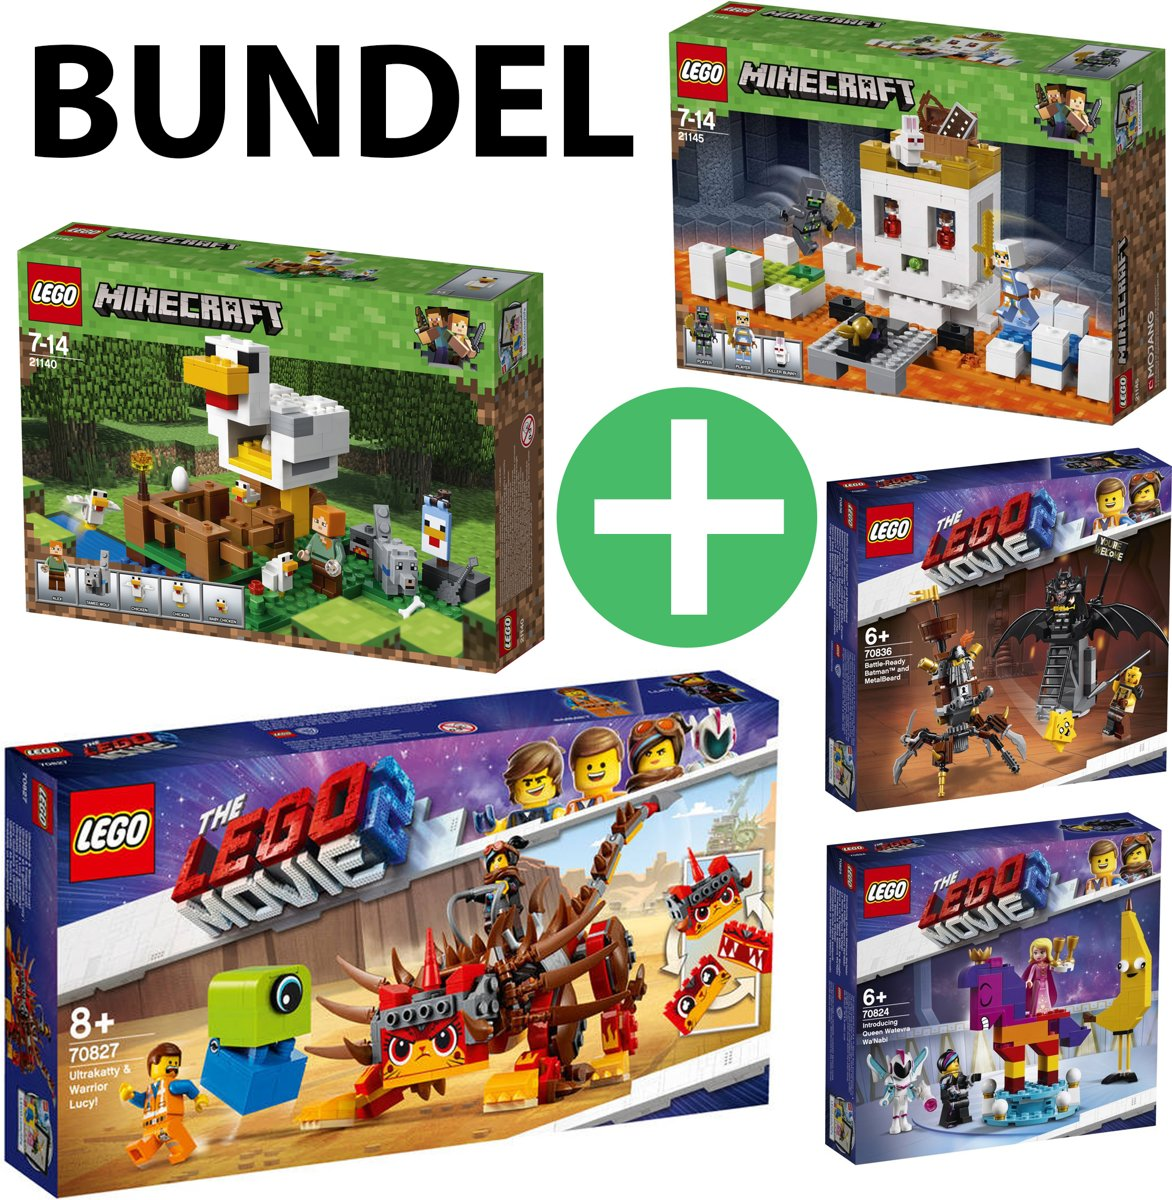 LEGO The Movie 2 & Minecraft BUNDEL | Minecraft Het Kippenhok 21140 + Minecraft De Schedelarena 21145 + Ultrakatty & Strijder Lucy! 70827 + Maak Kennis met Koningin Watevra WaNabi 70824 + Gevechtsklare Batman en Metaalbaard 70836